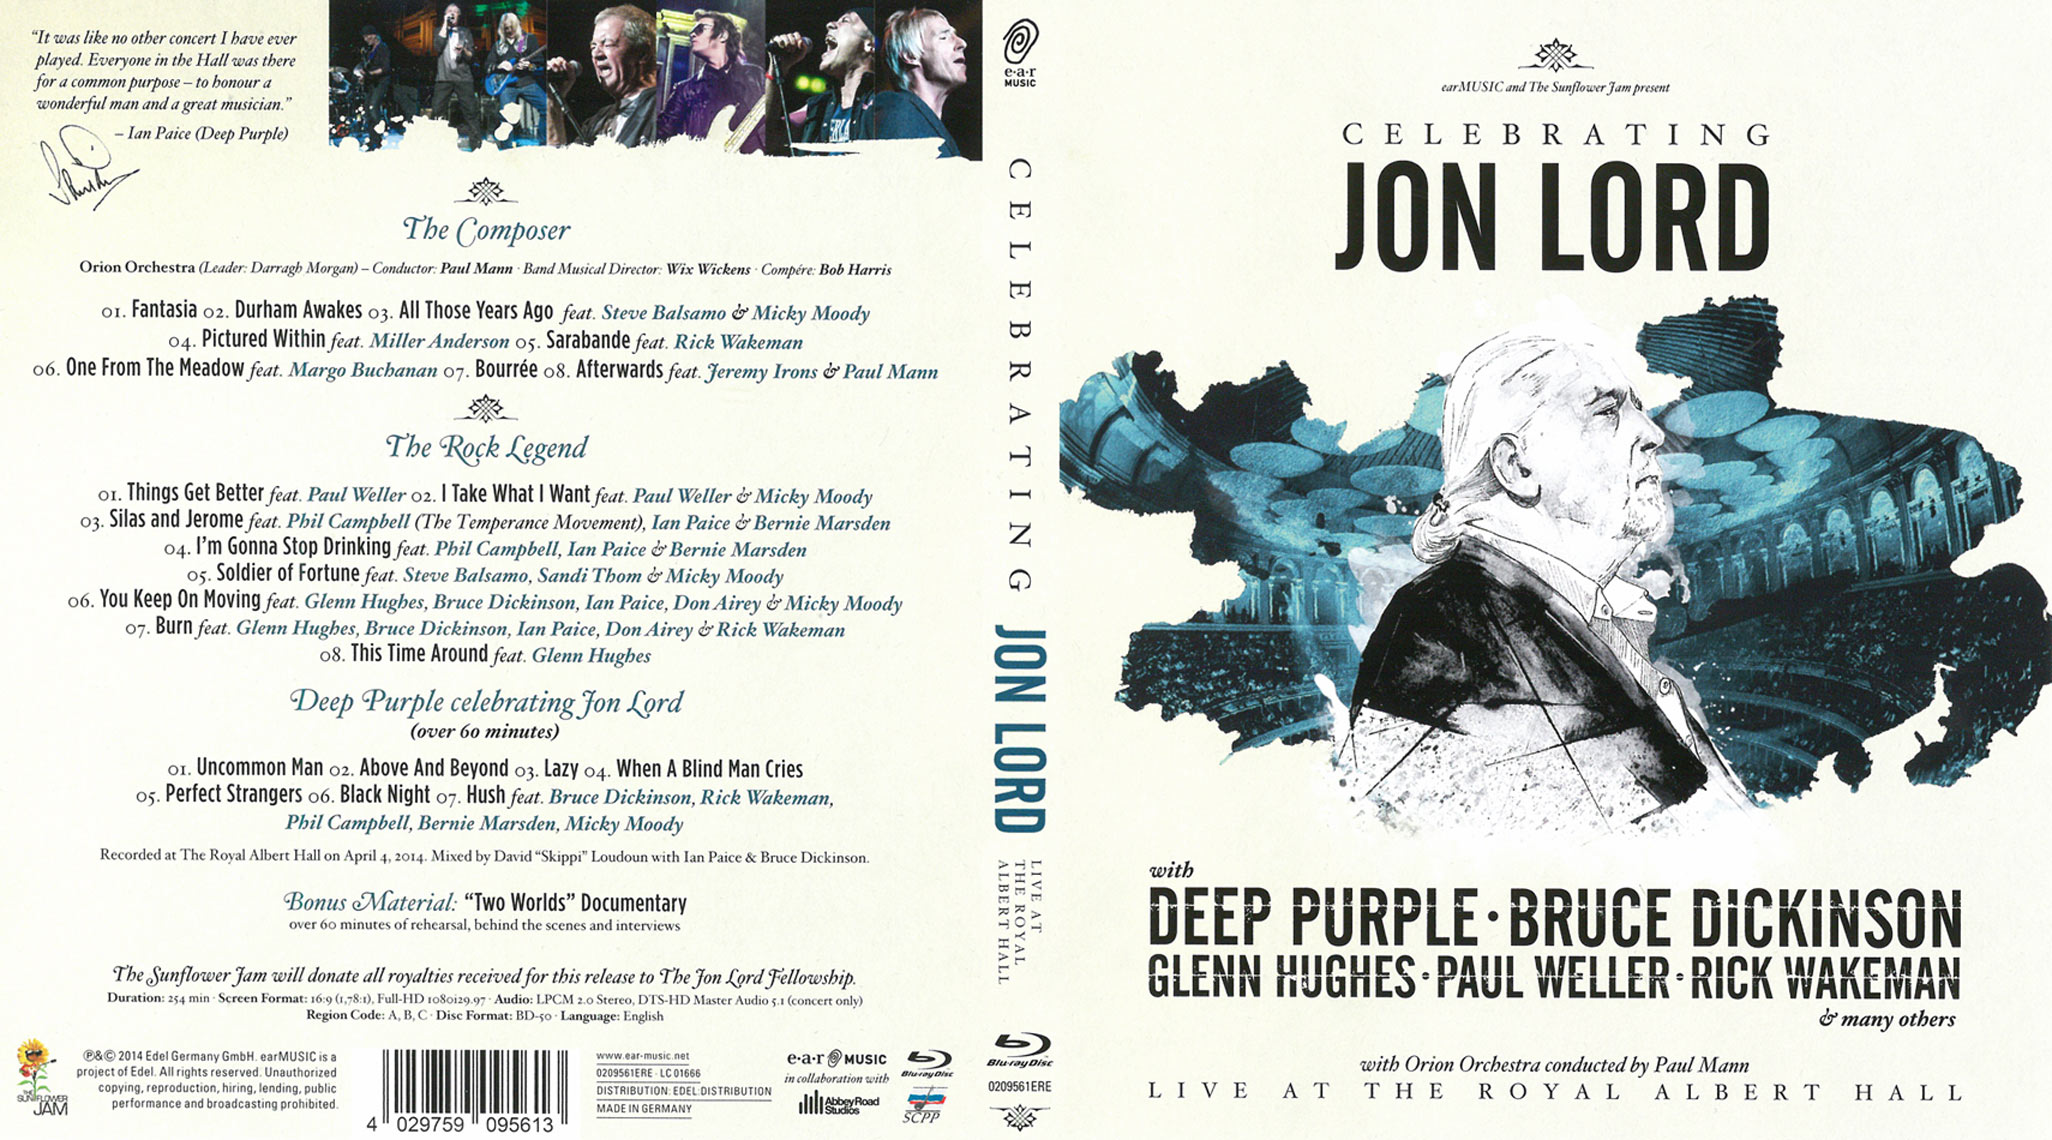 Celebrating-Jon-Lord-DVD-cover